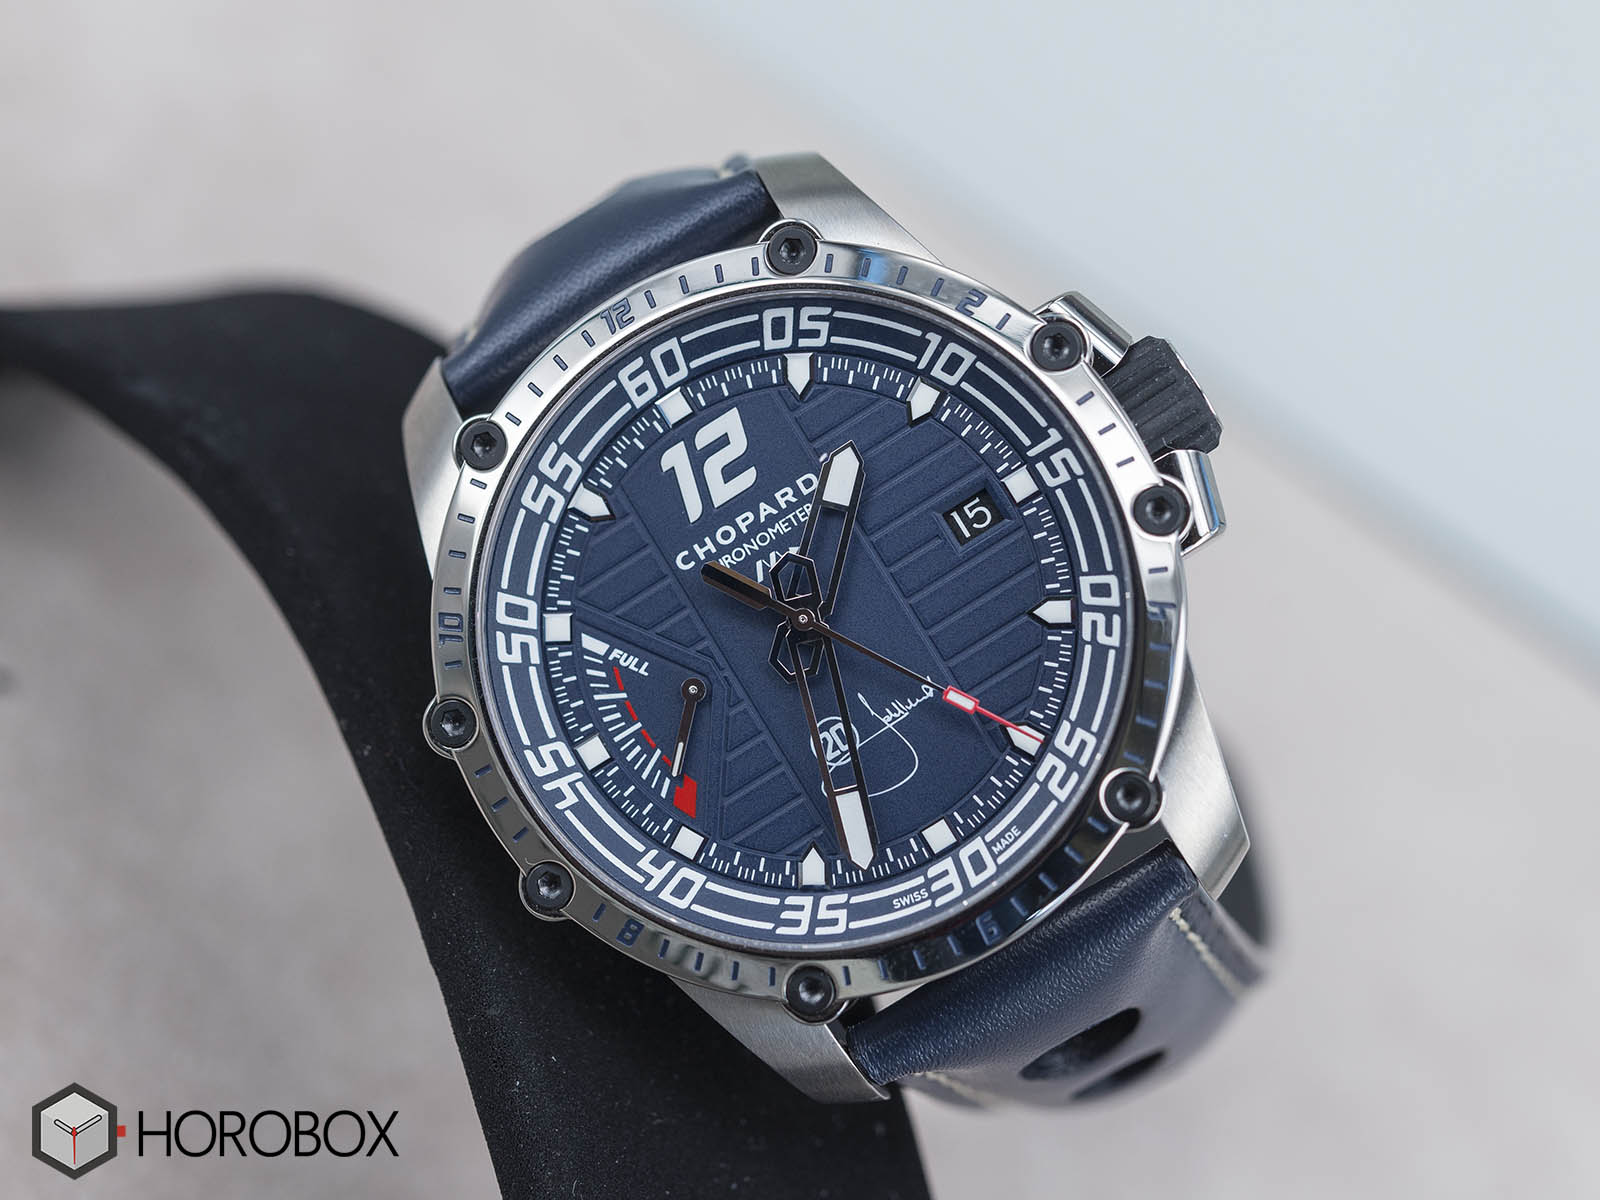 chopard-superfast-8hz-power-control-porsche-919-onlywatch.jpg